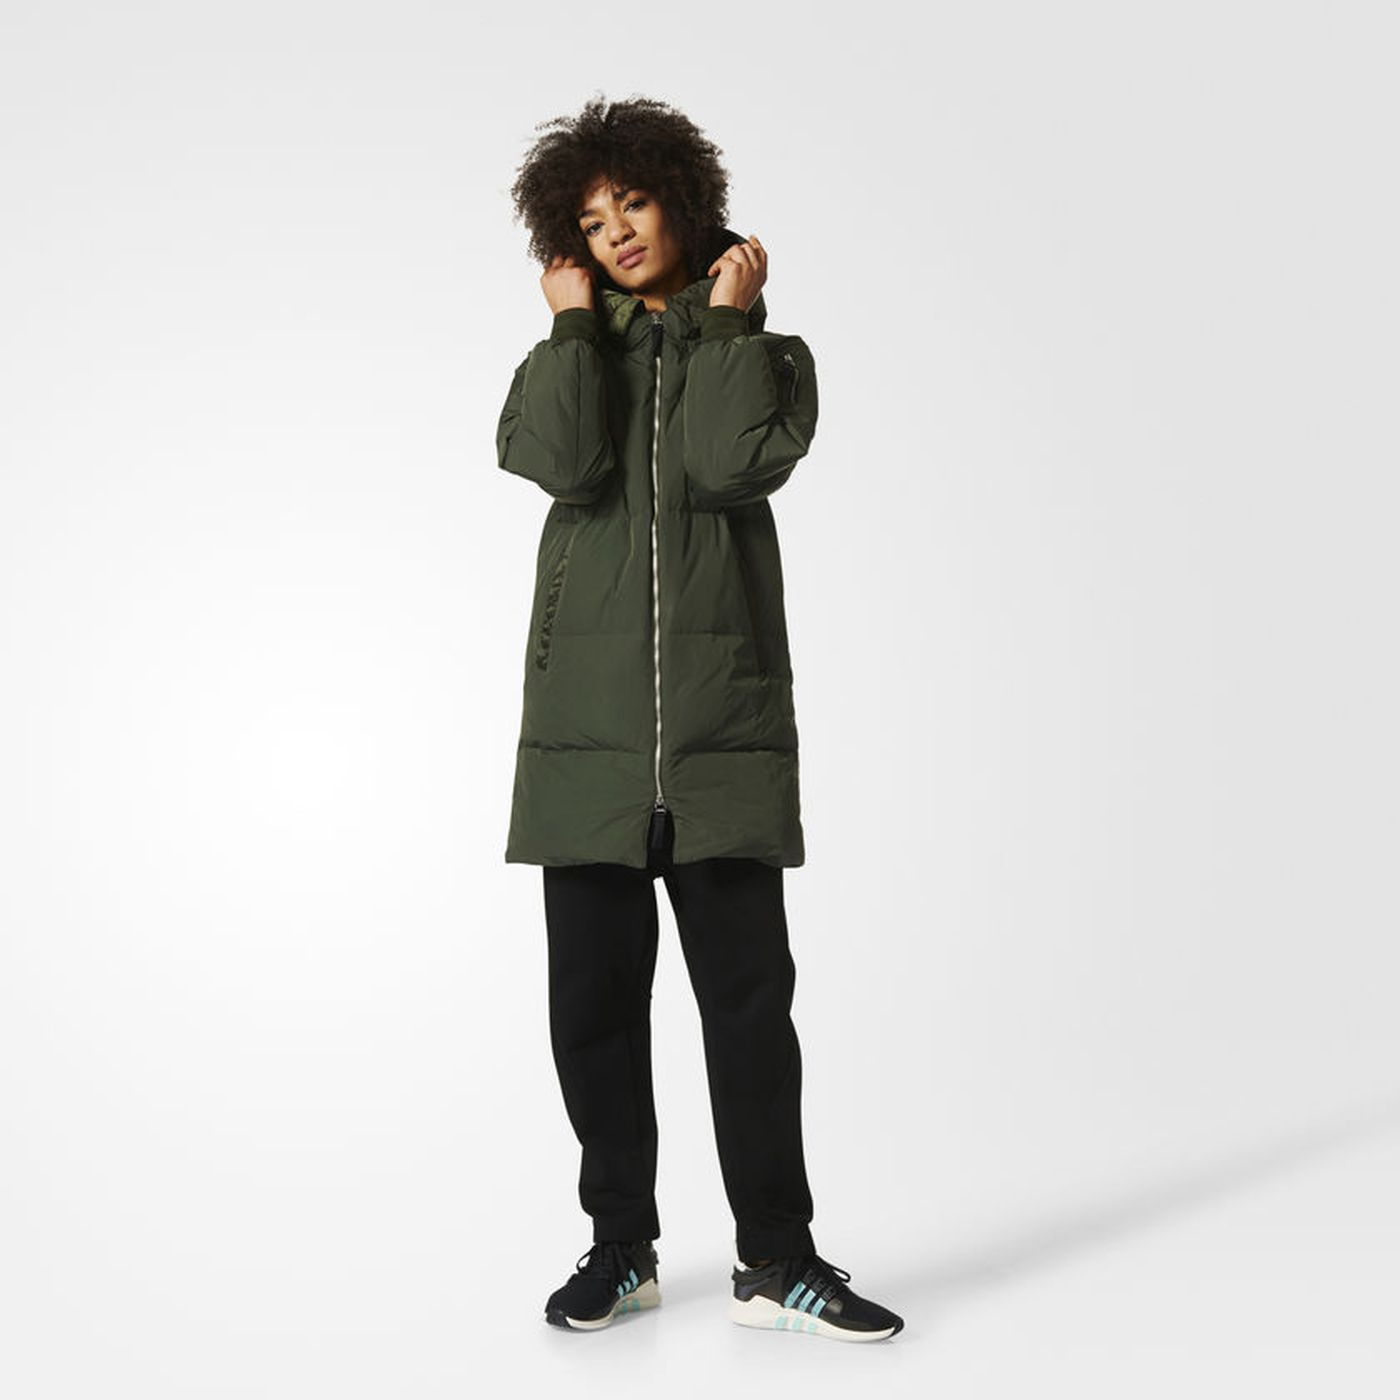 93437f4d30a What to Buy From the ASOS Black Friday Sale - Racked